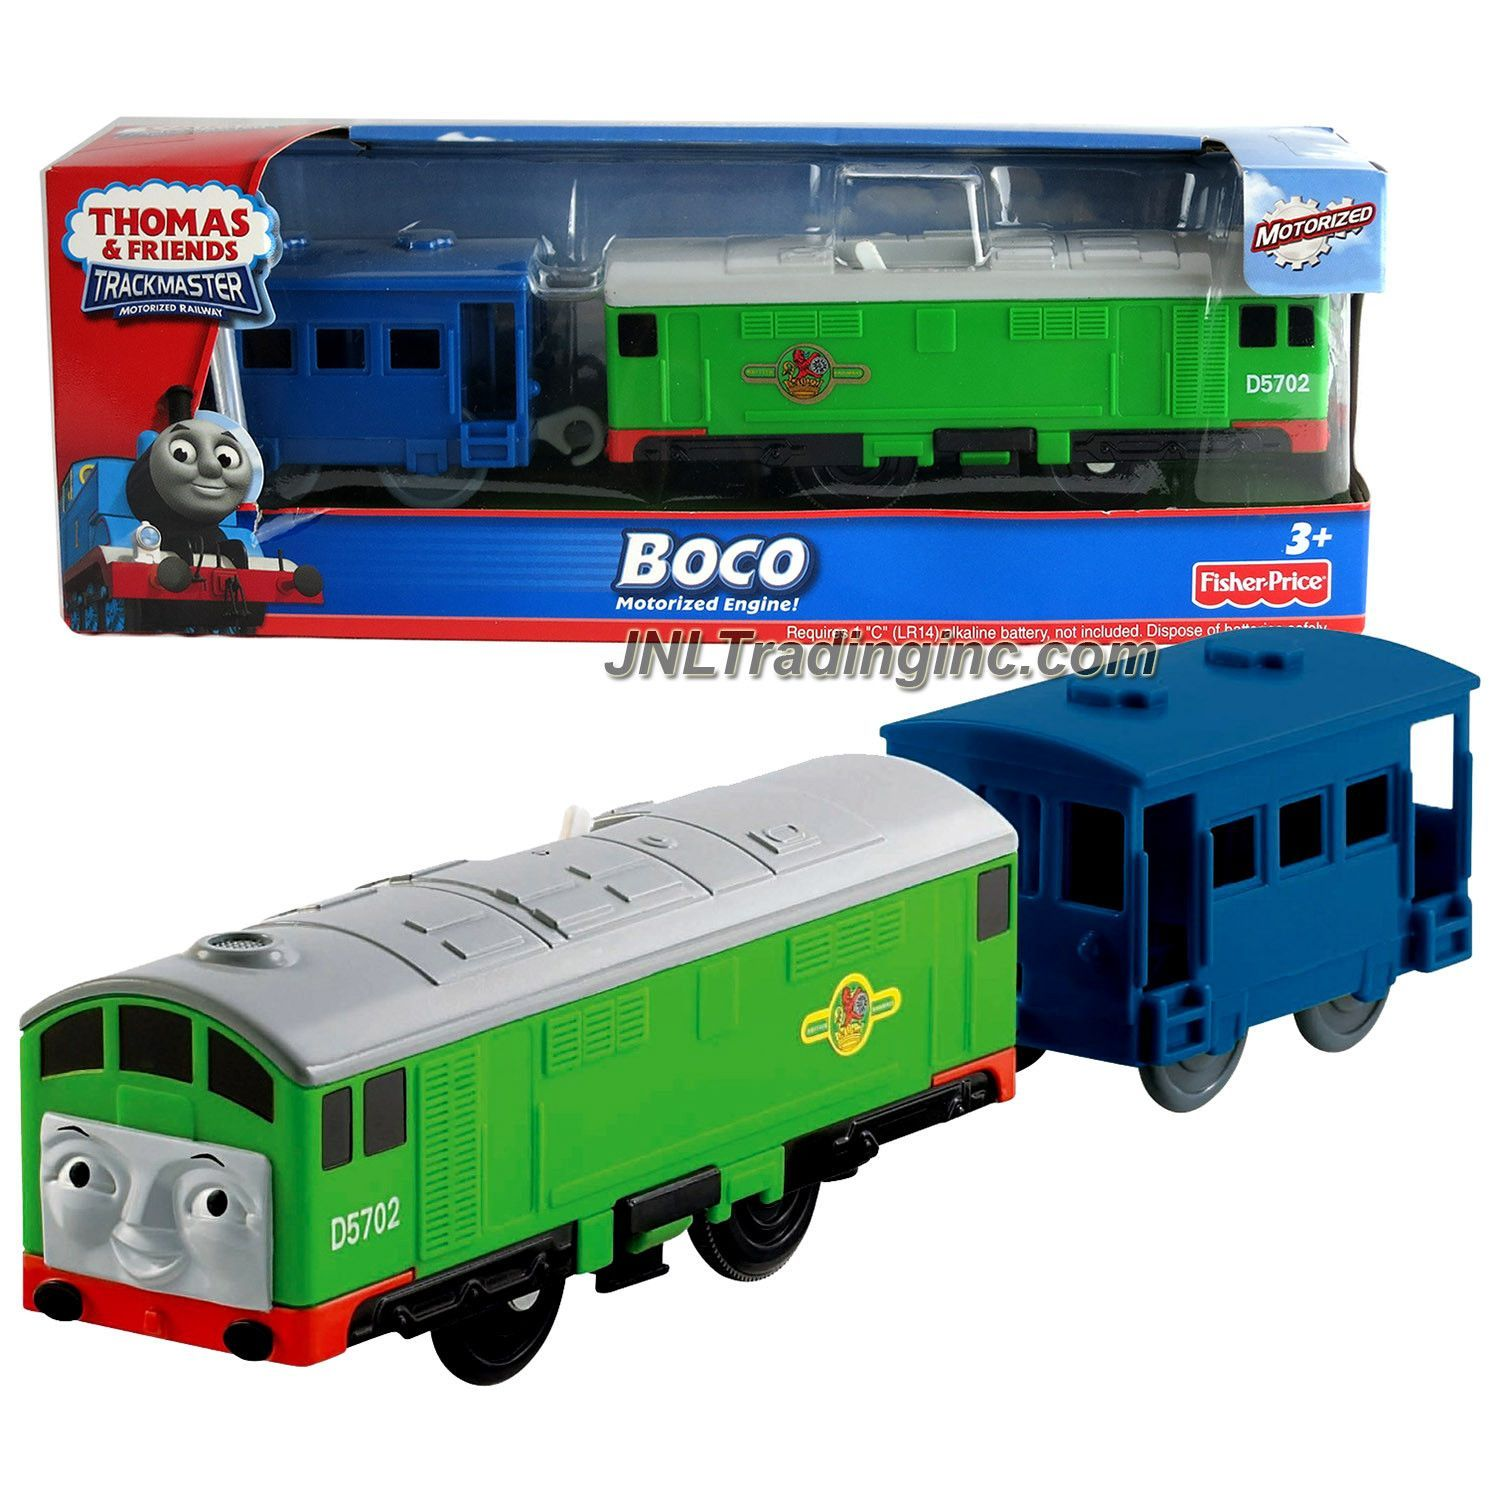 Thomas and Friends Trackmaster Motorized Railway 2 Pack Train Set ...